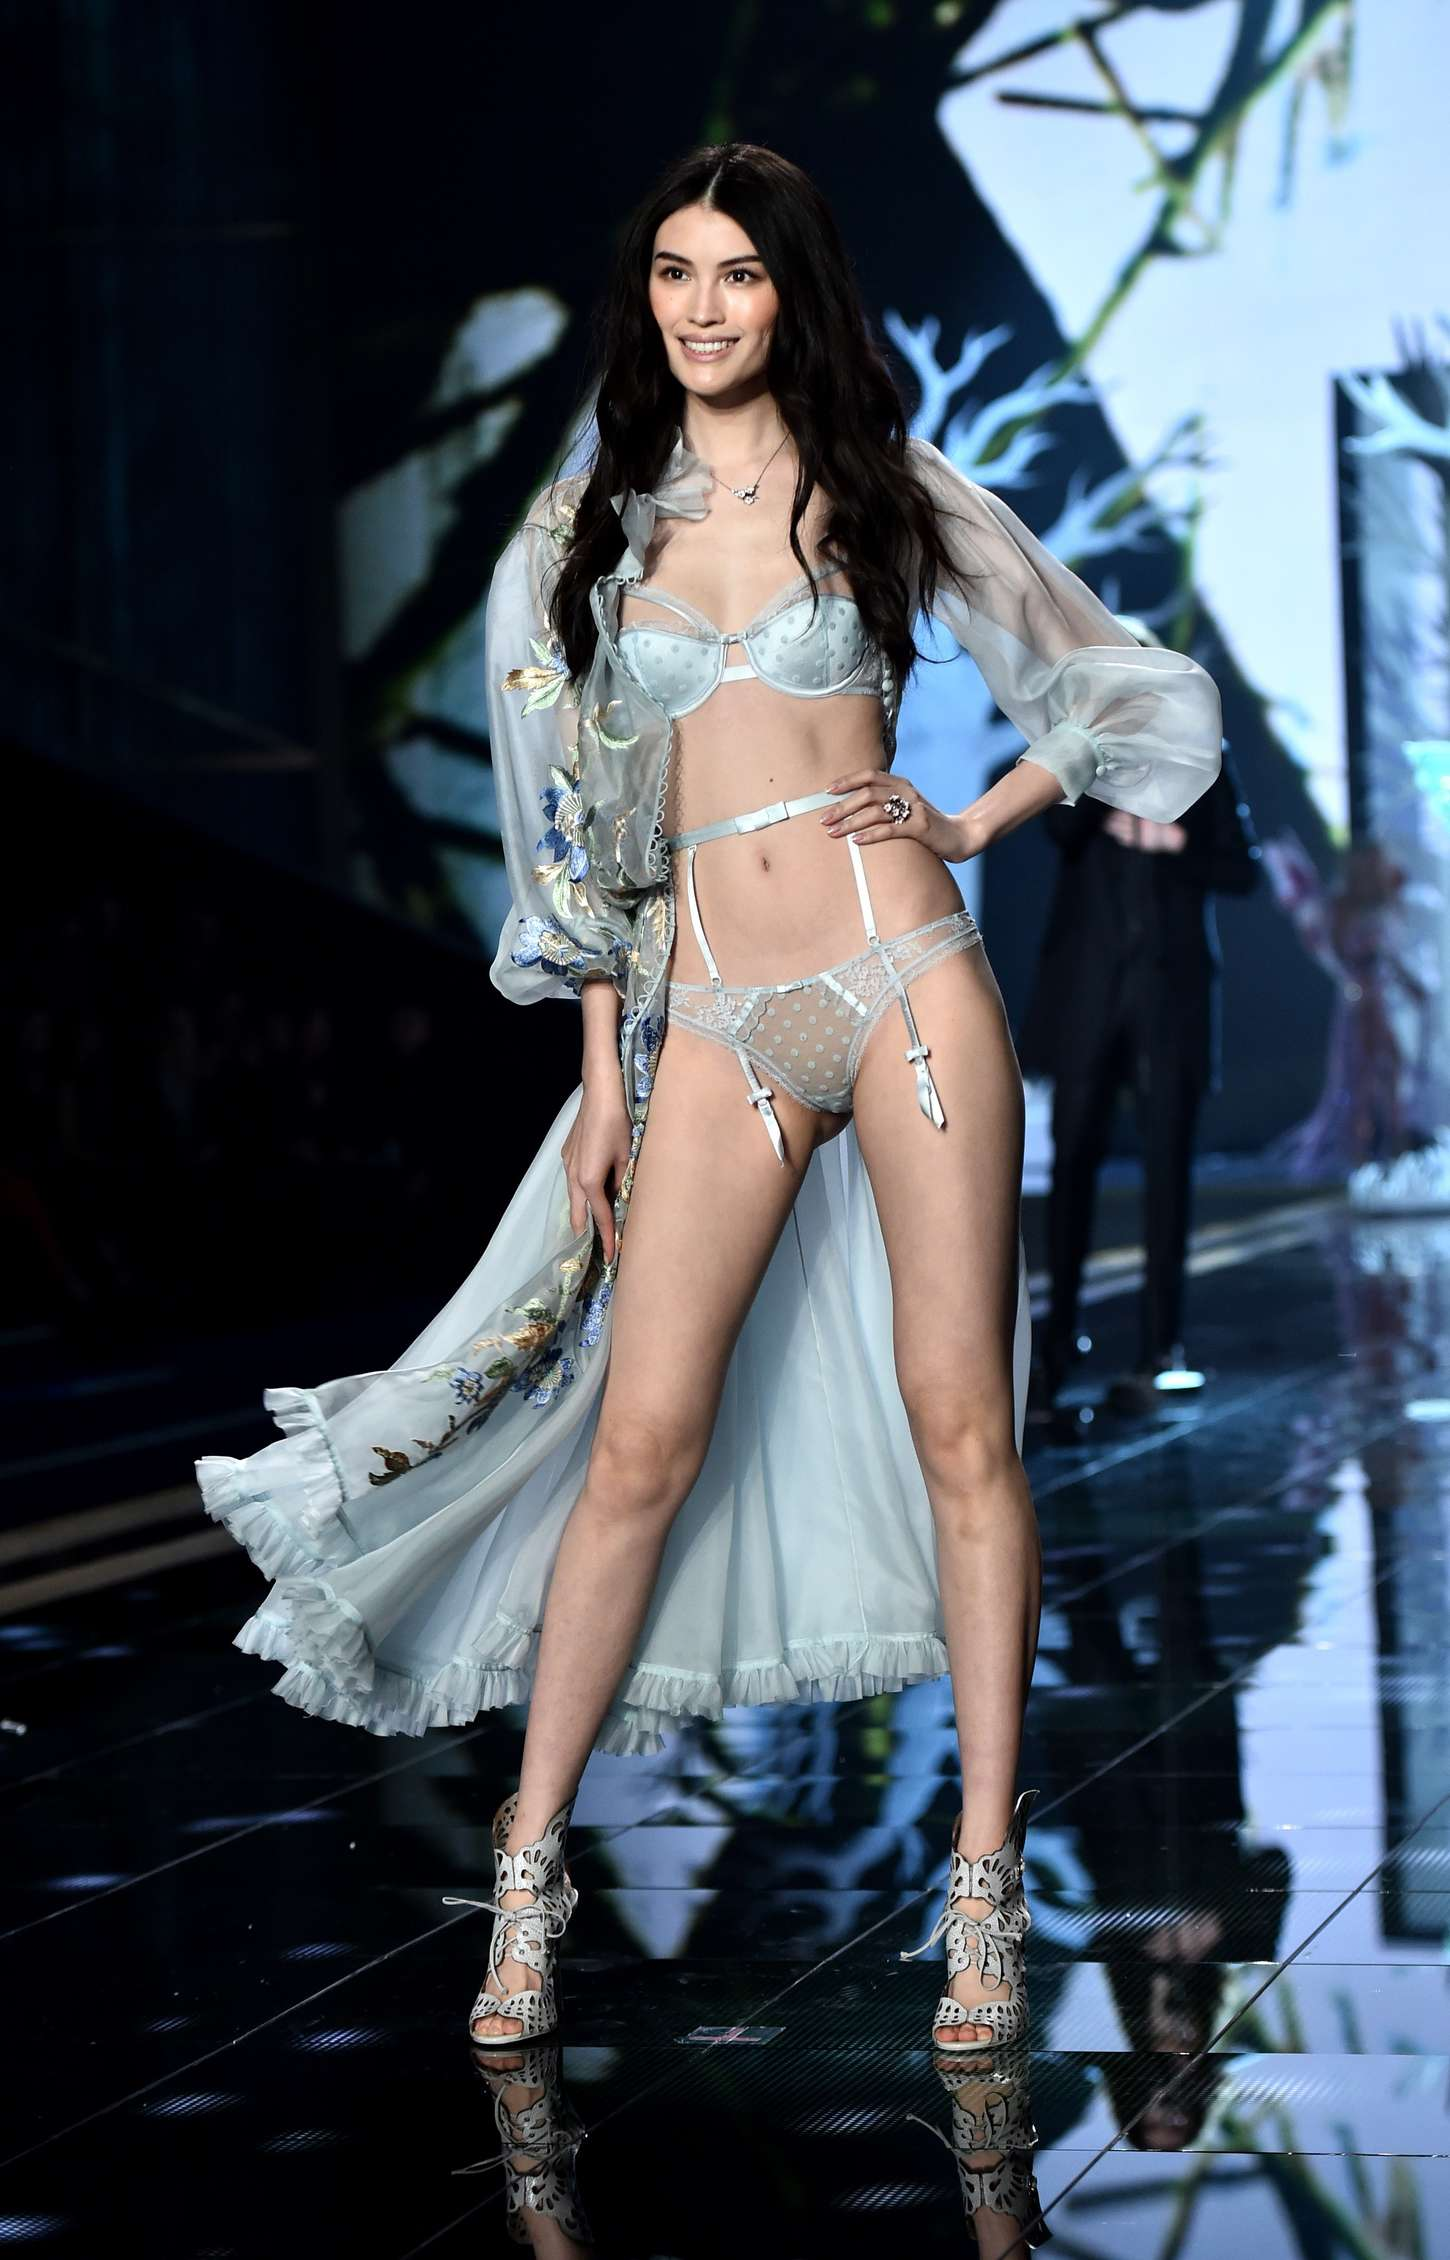 Sui He Victoria's Secret Fashion Show Runway in London